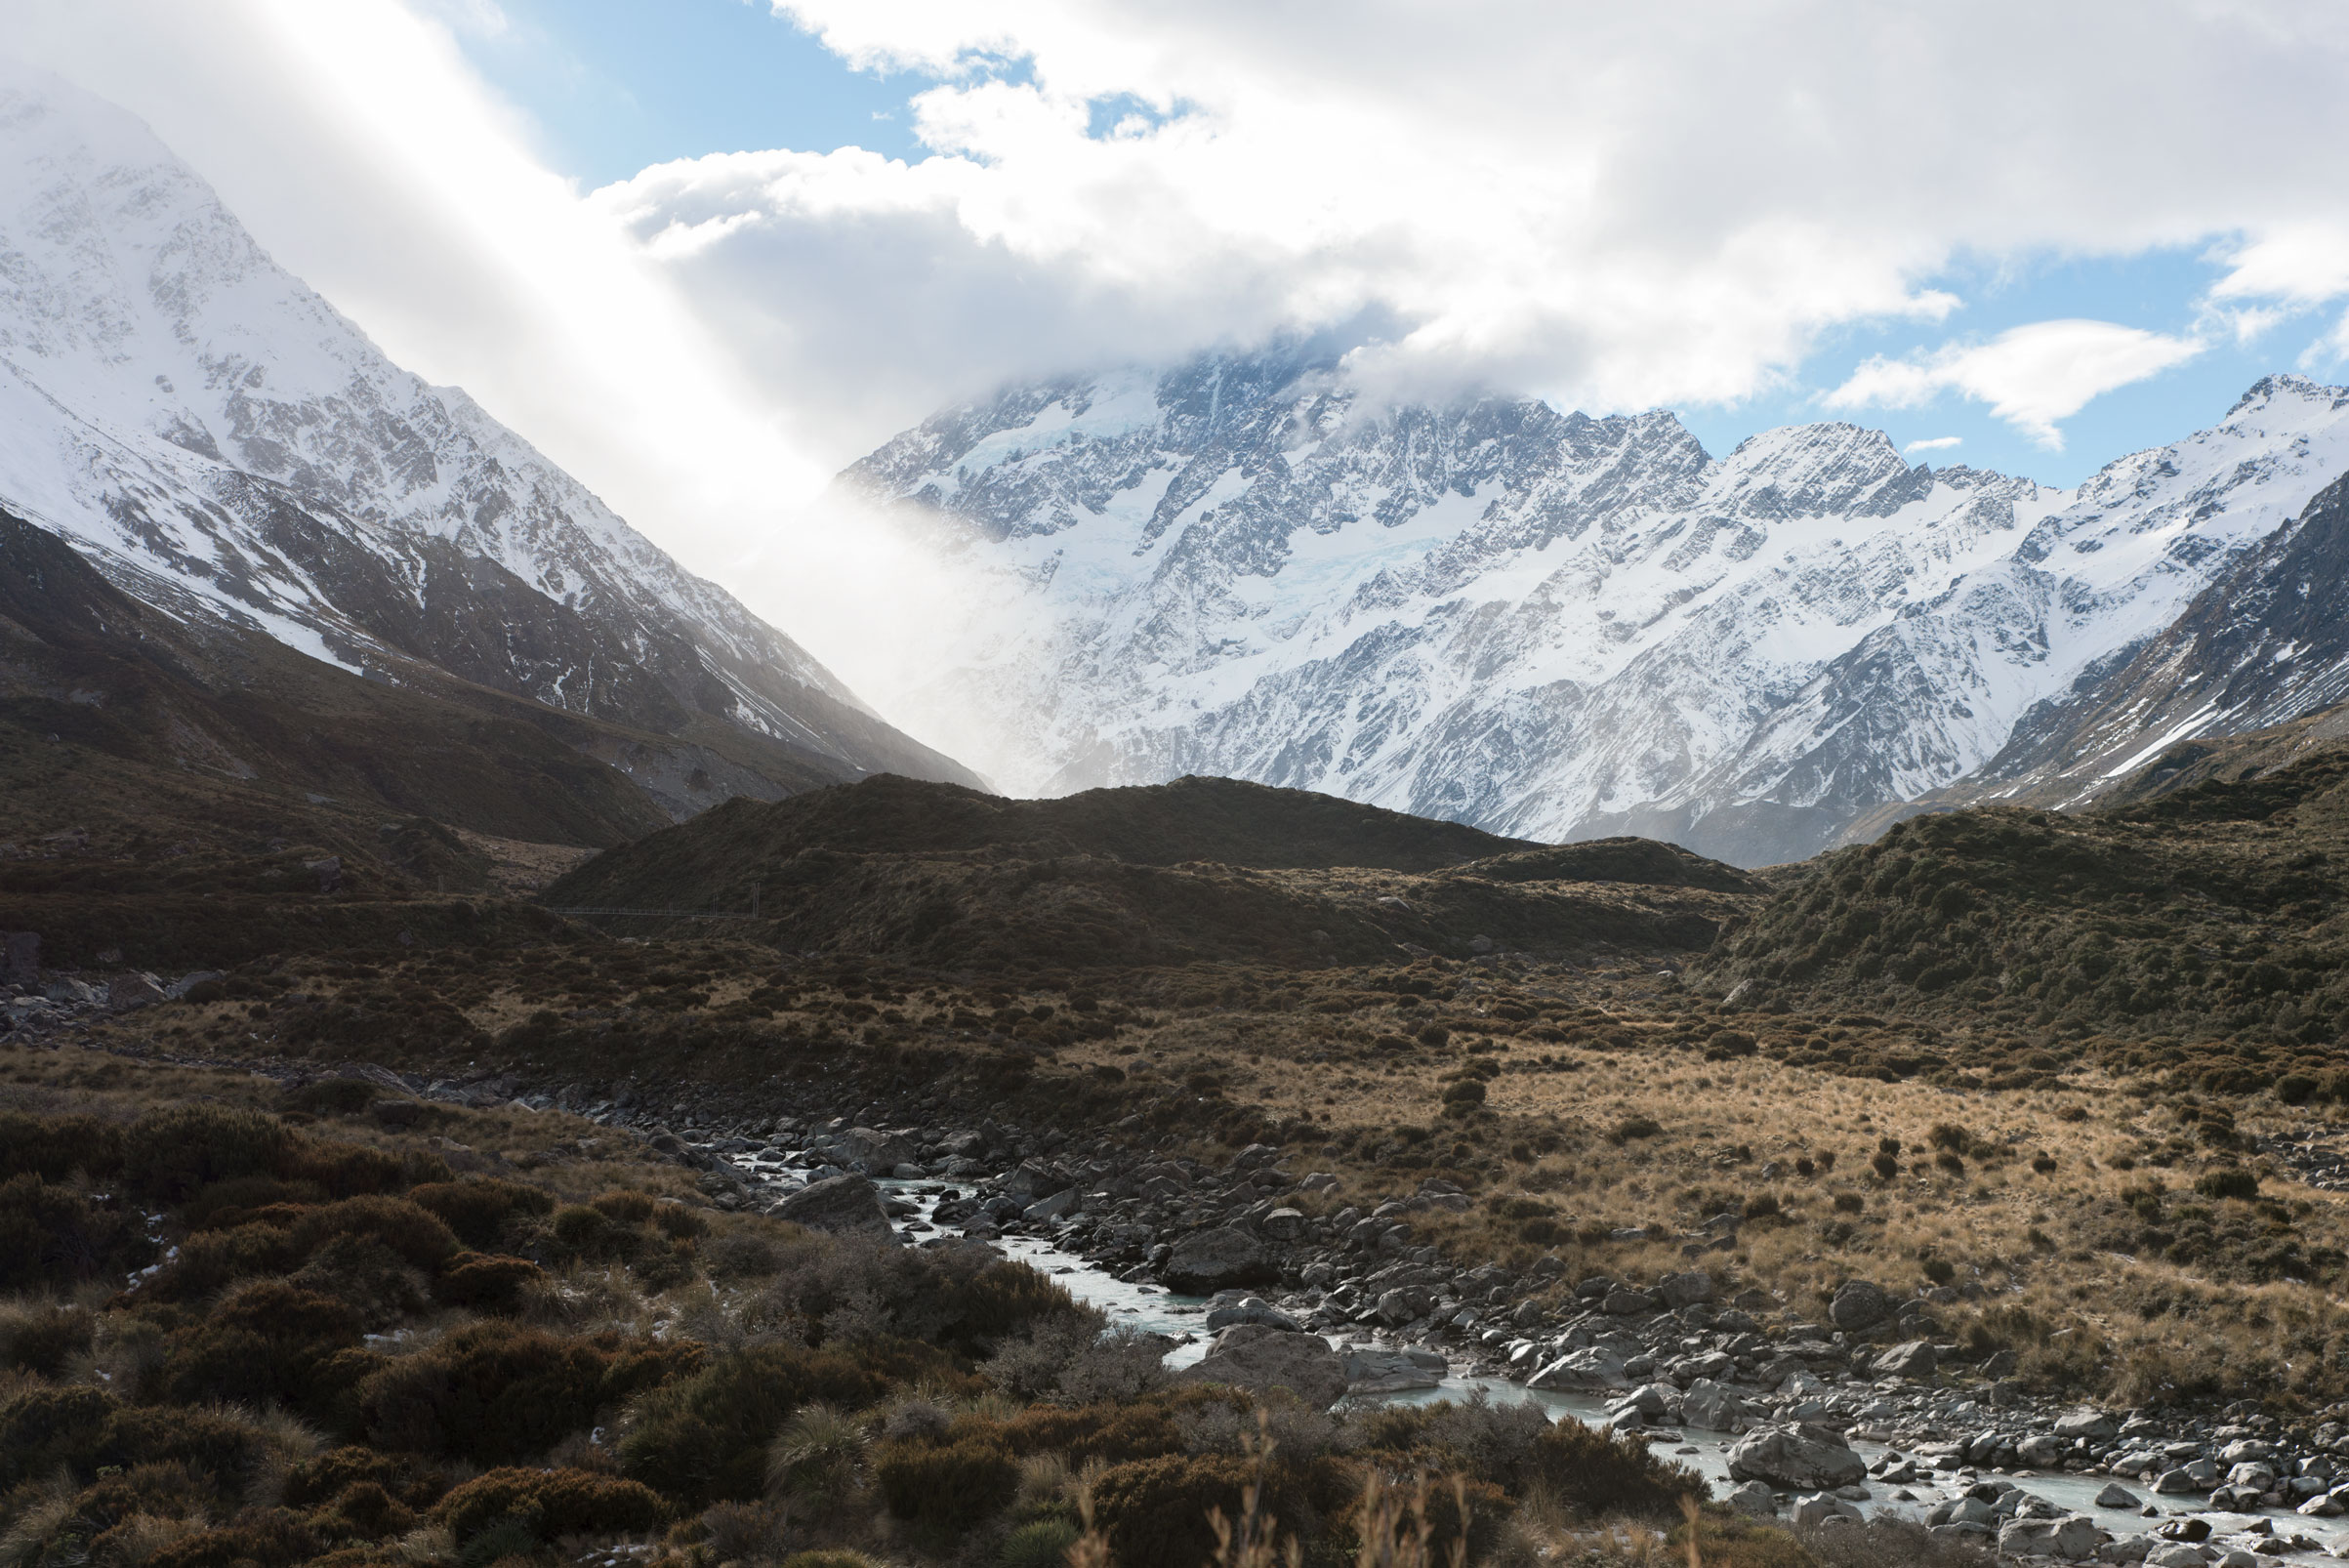 DSC_4191-MT-COOK-WEB.jpg